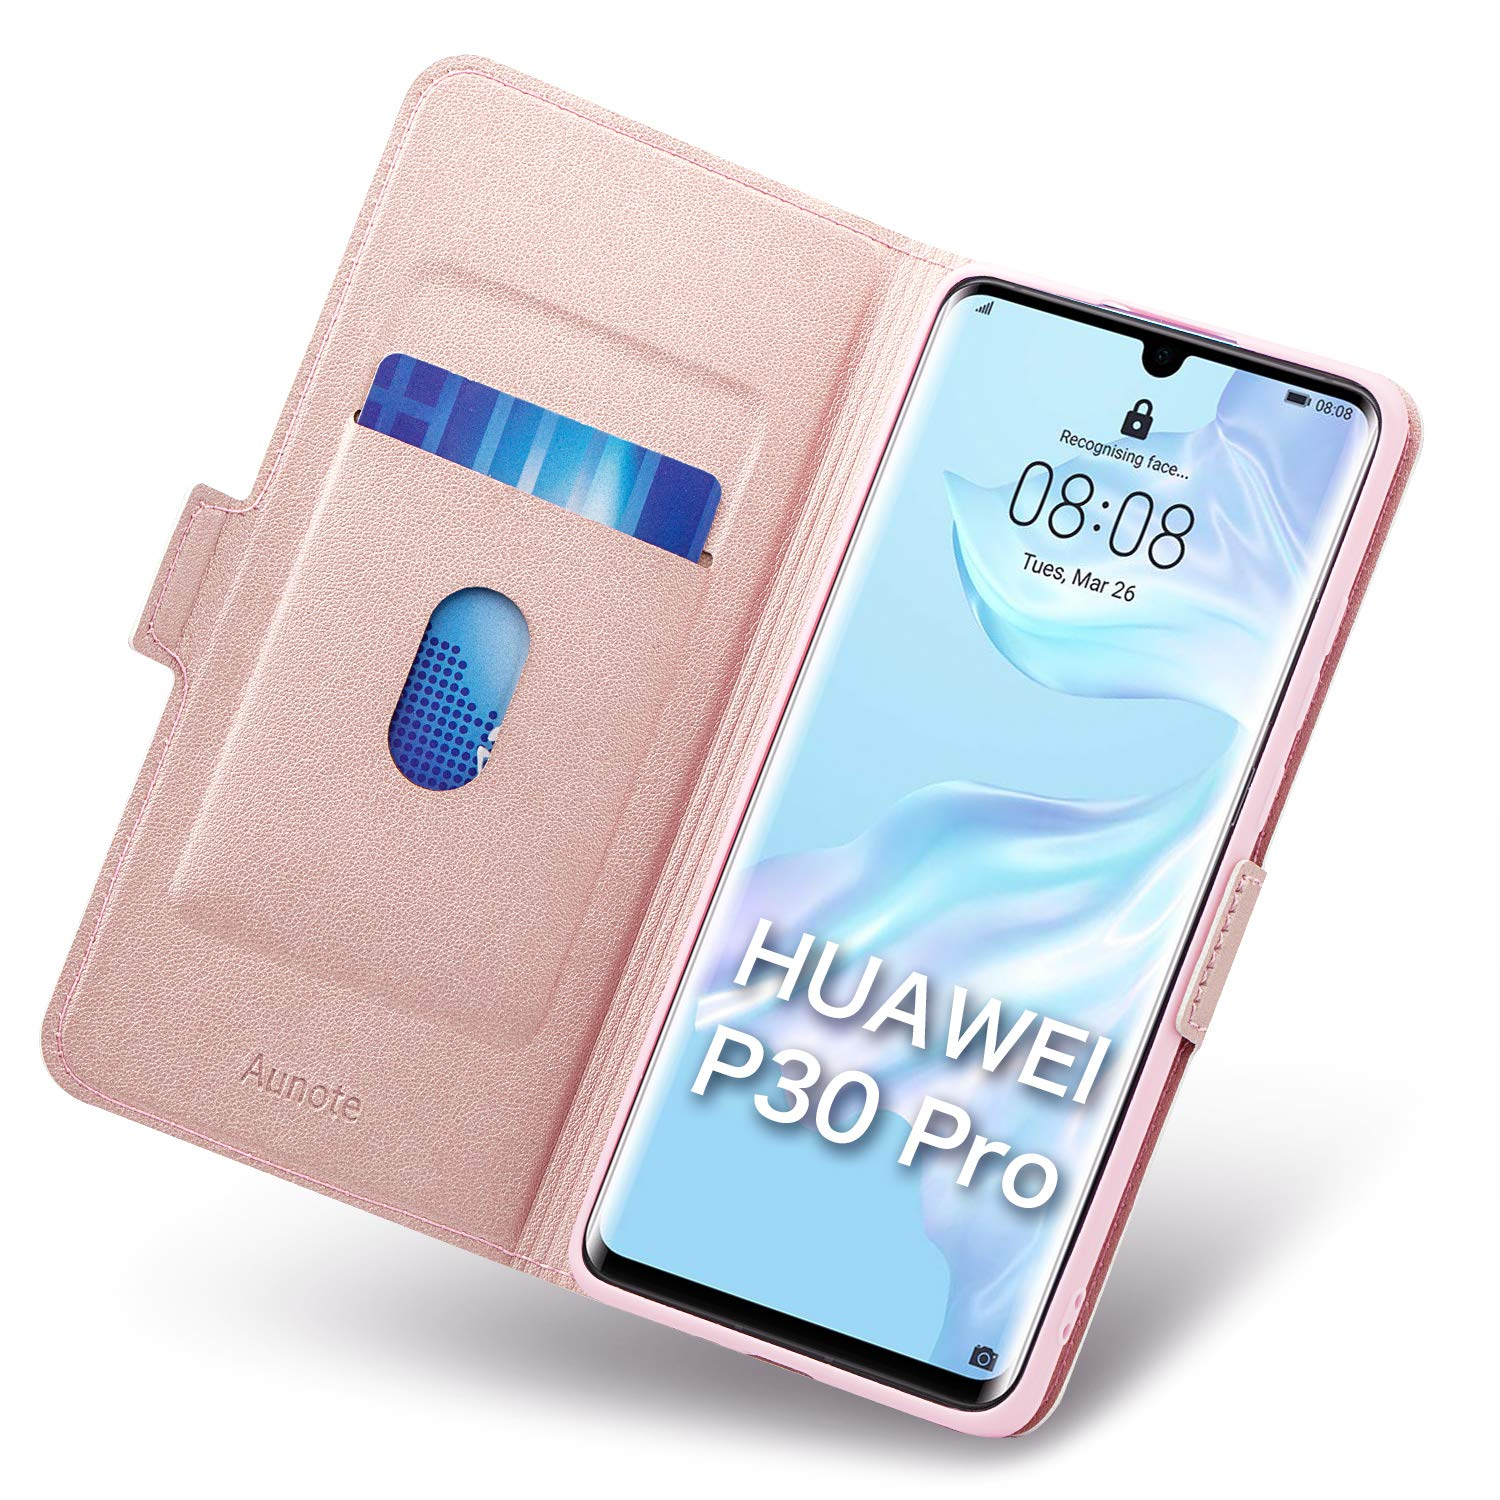 Ultra Slim Huawei P30 Pro Leather Case Kickstand Flip//Folio Phone Cover Full Protection Huawei P30 Pro Case Wallet Black P30 Pro Phone Cases Huawei P30 Pro Cases with Card Holder